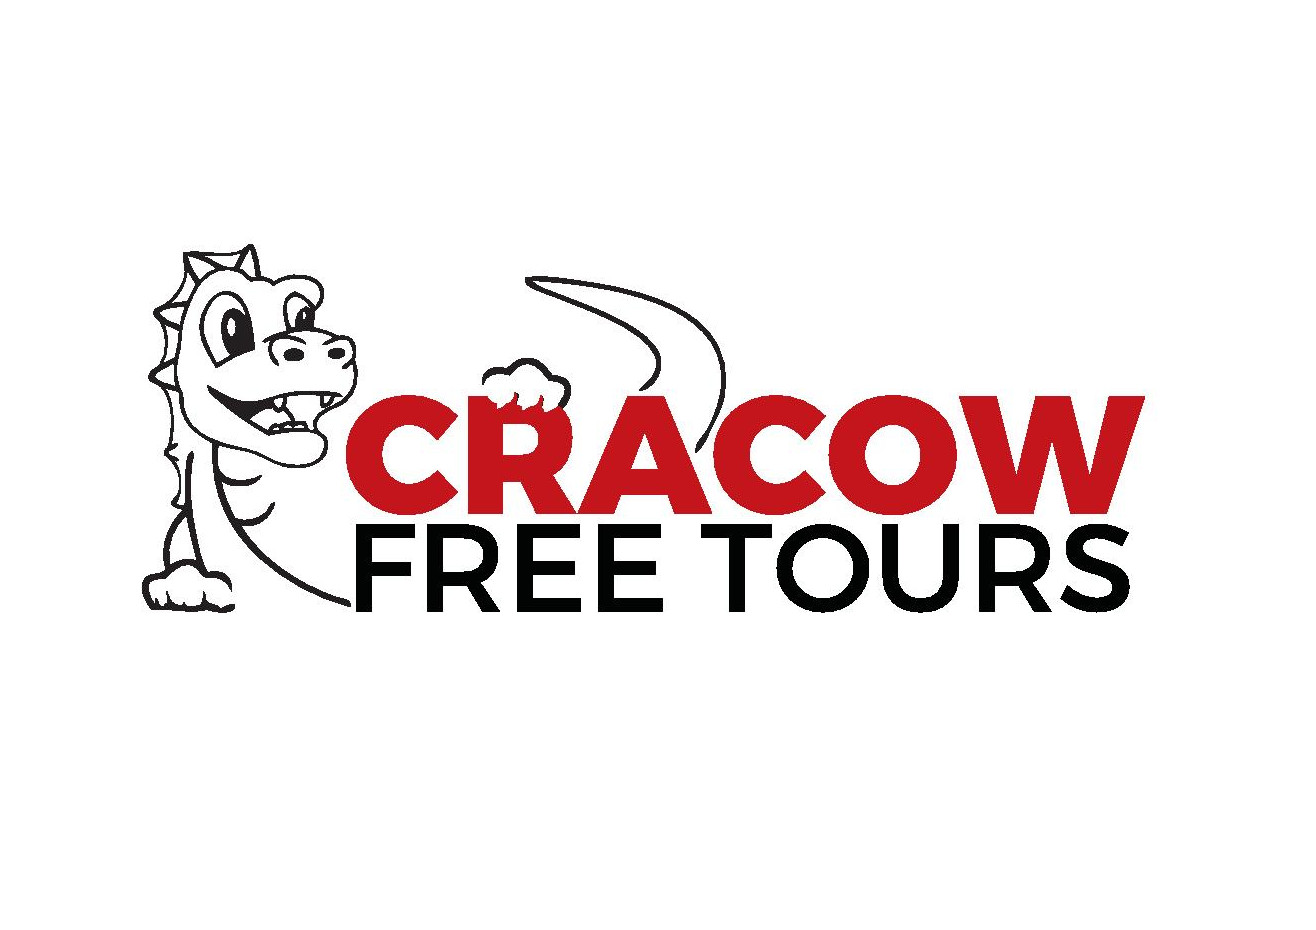 Cracow Free Tours